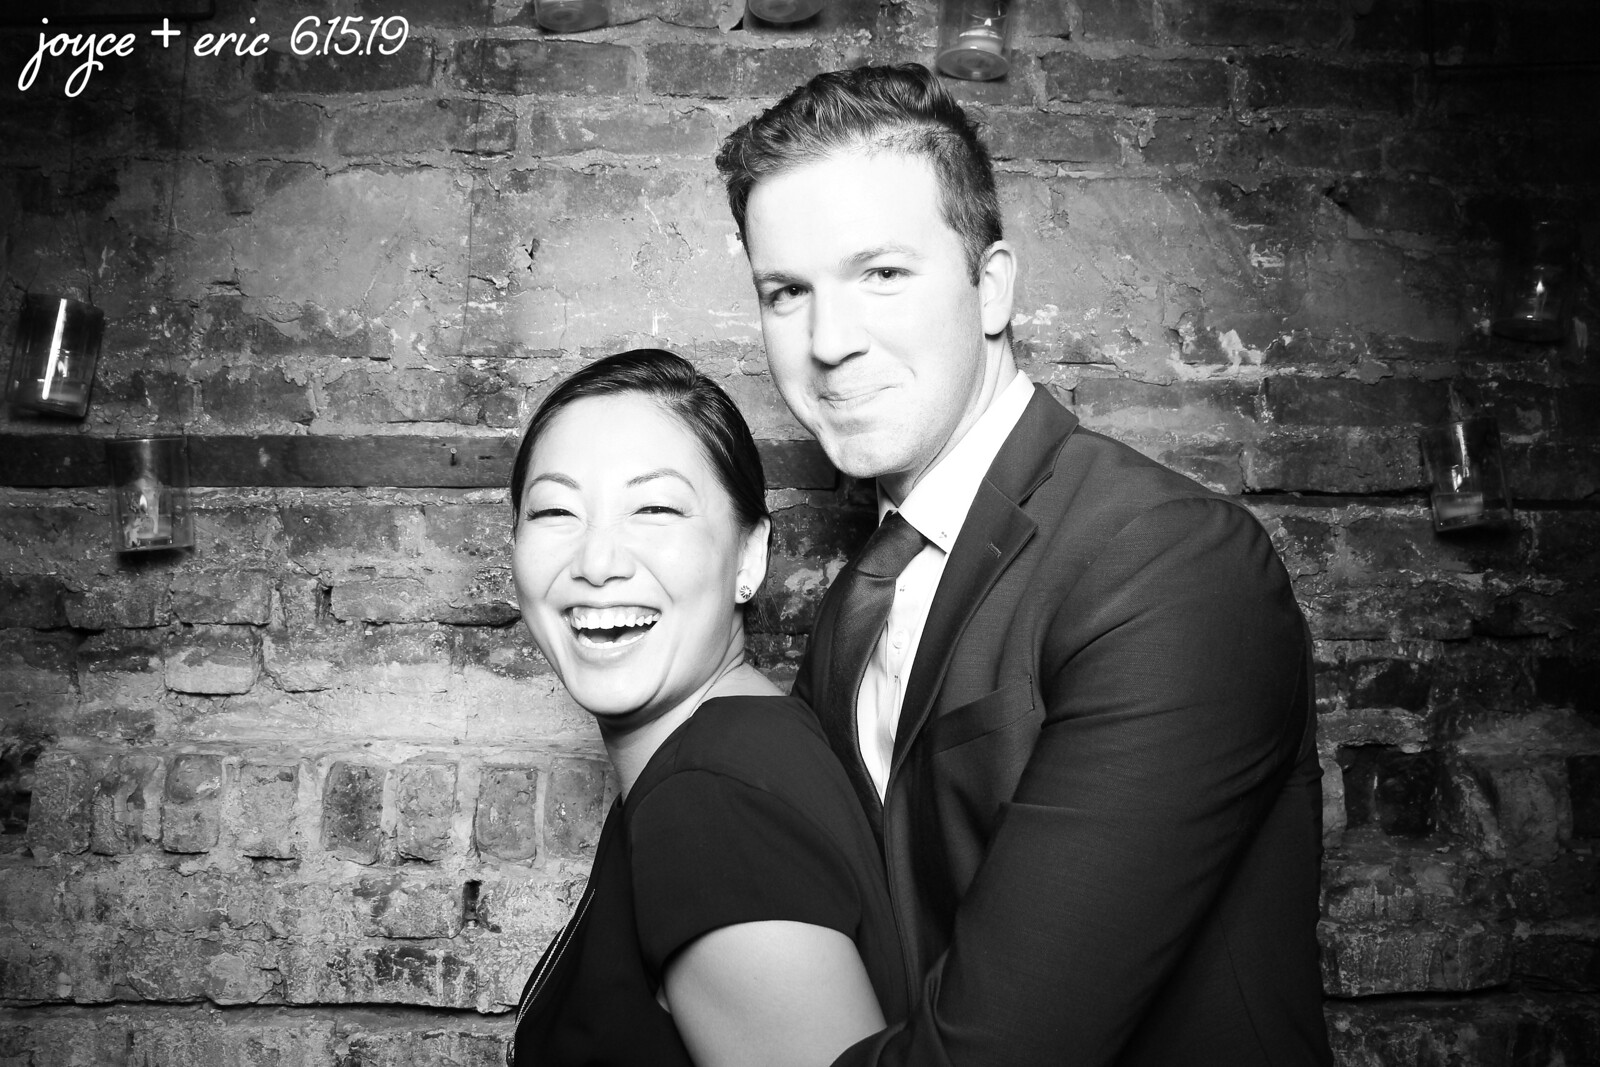 Chicago_Vintage_Wedding_Photobooth_New_Leaf_03.jpg